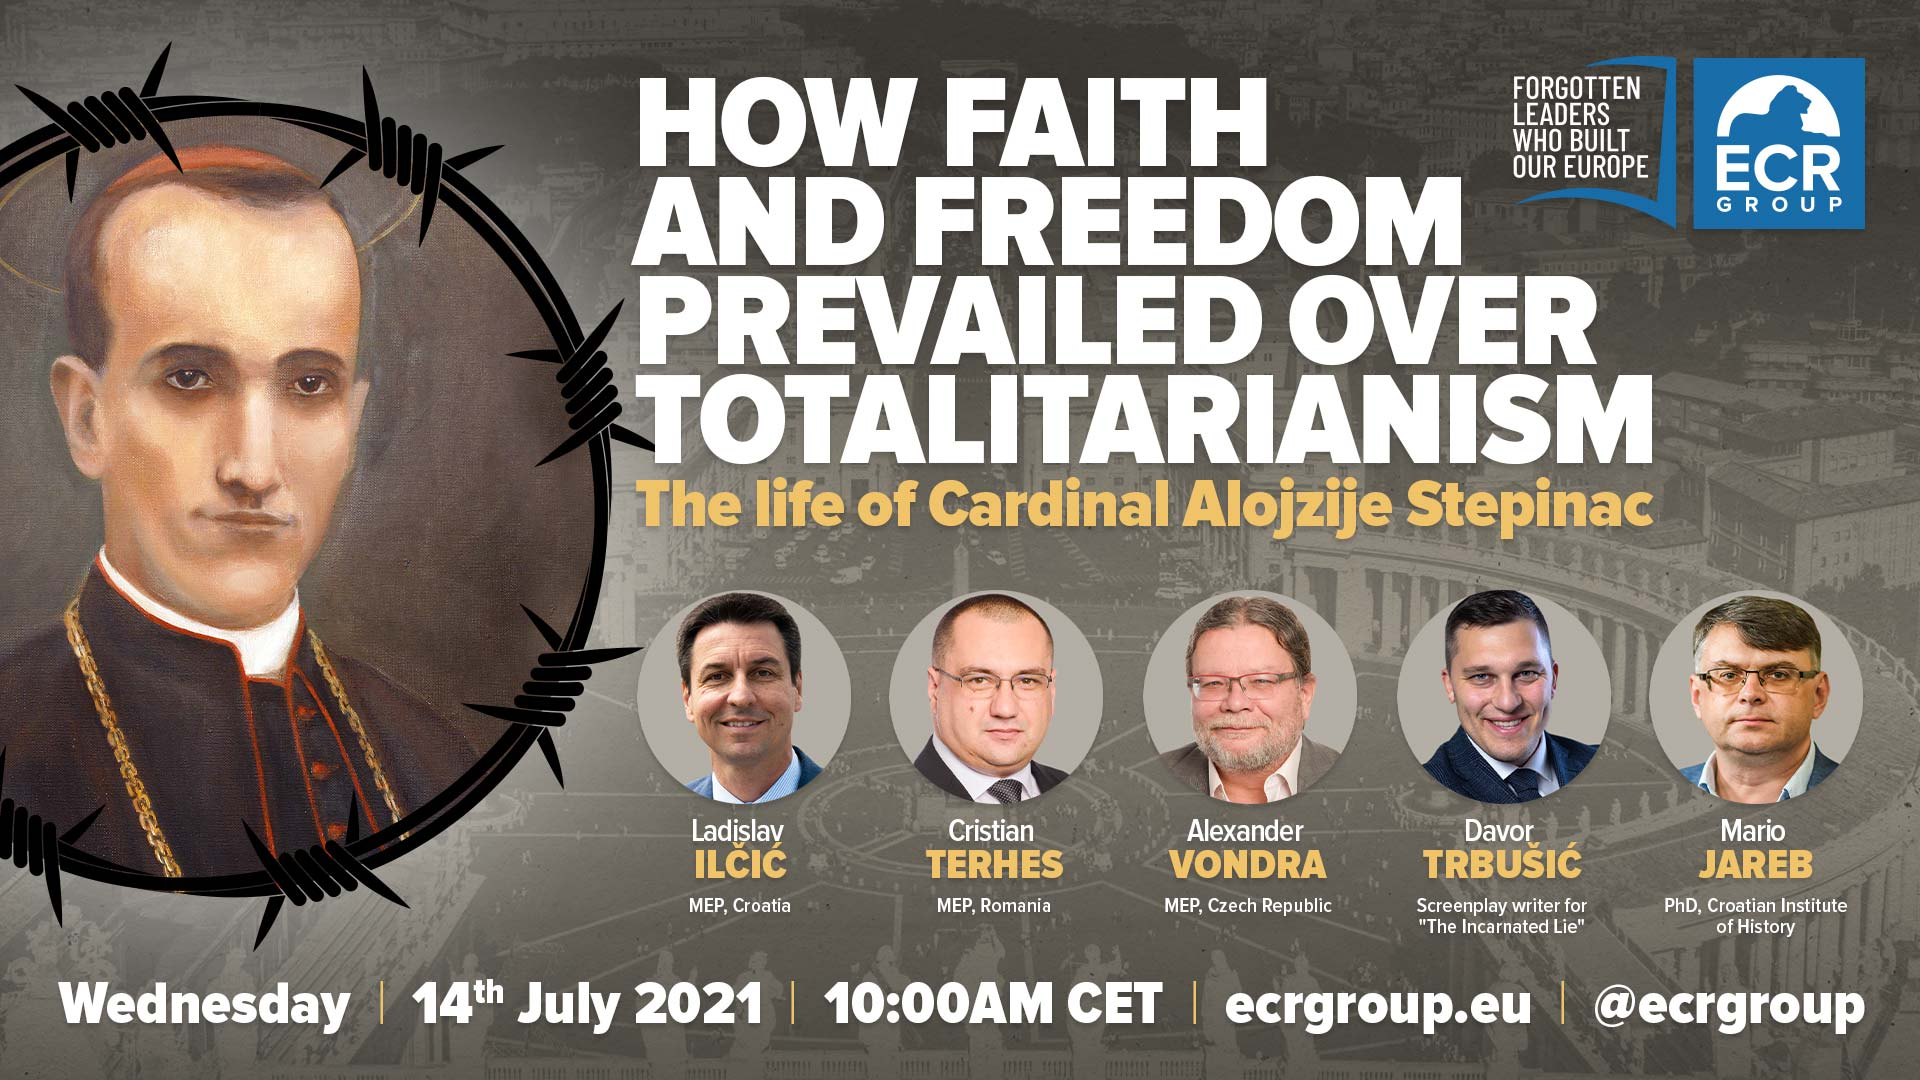 Forgotten Leaders who built our Europe: How faith and freedom prevailed over totalitarianism